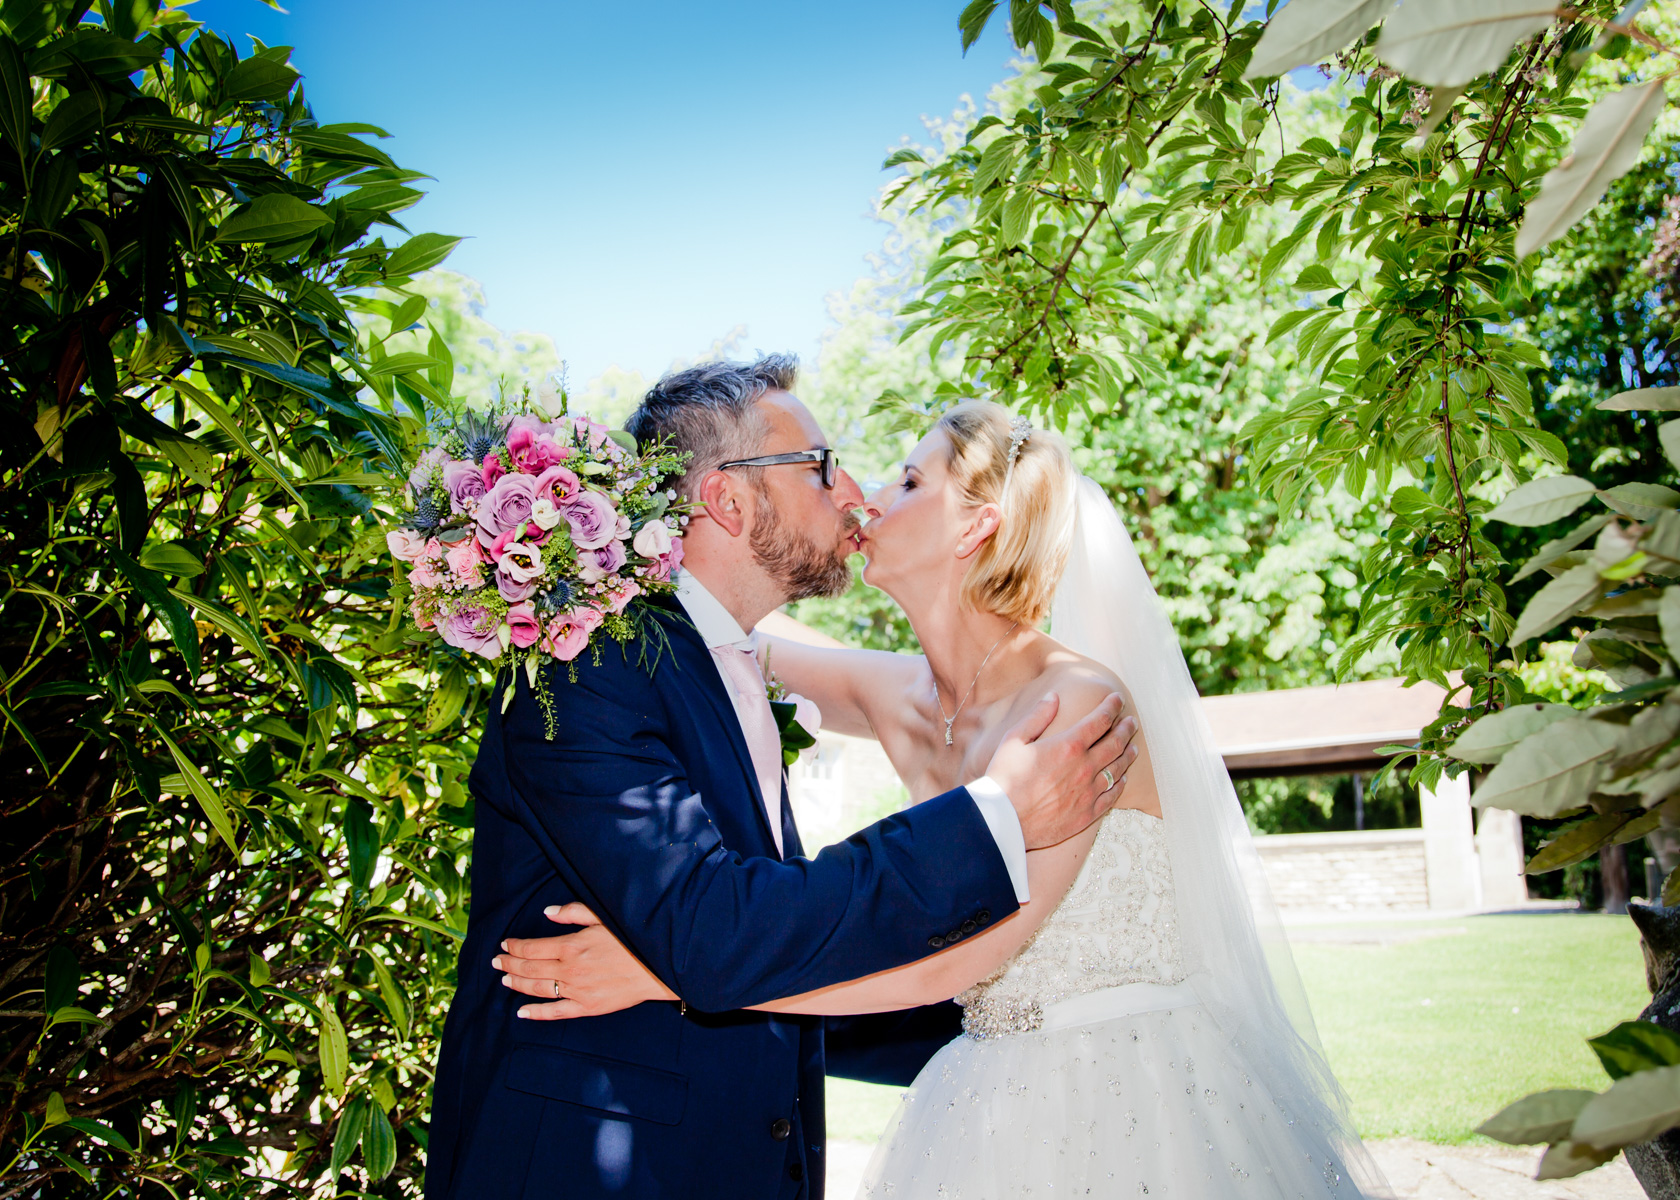 TrueWeddingPhotos.com-4381